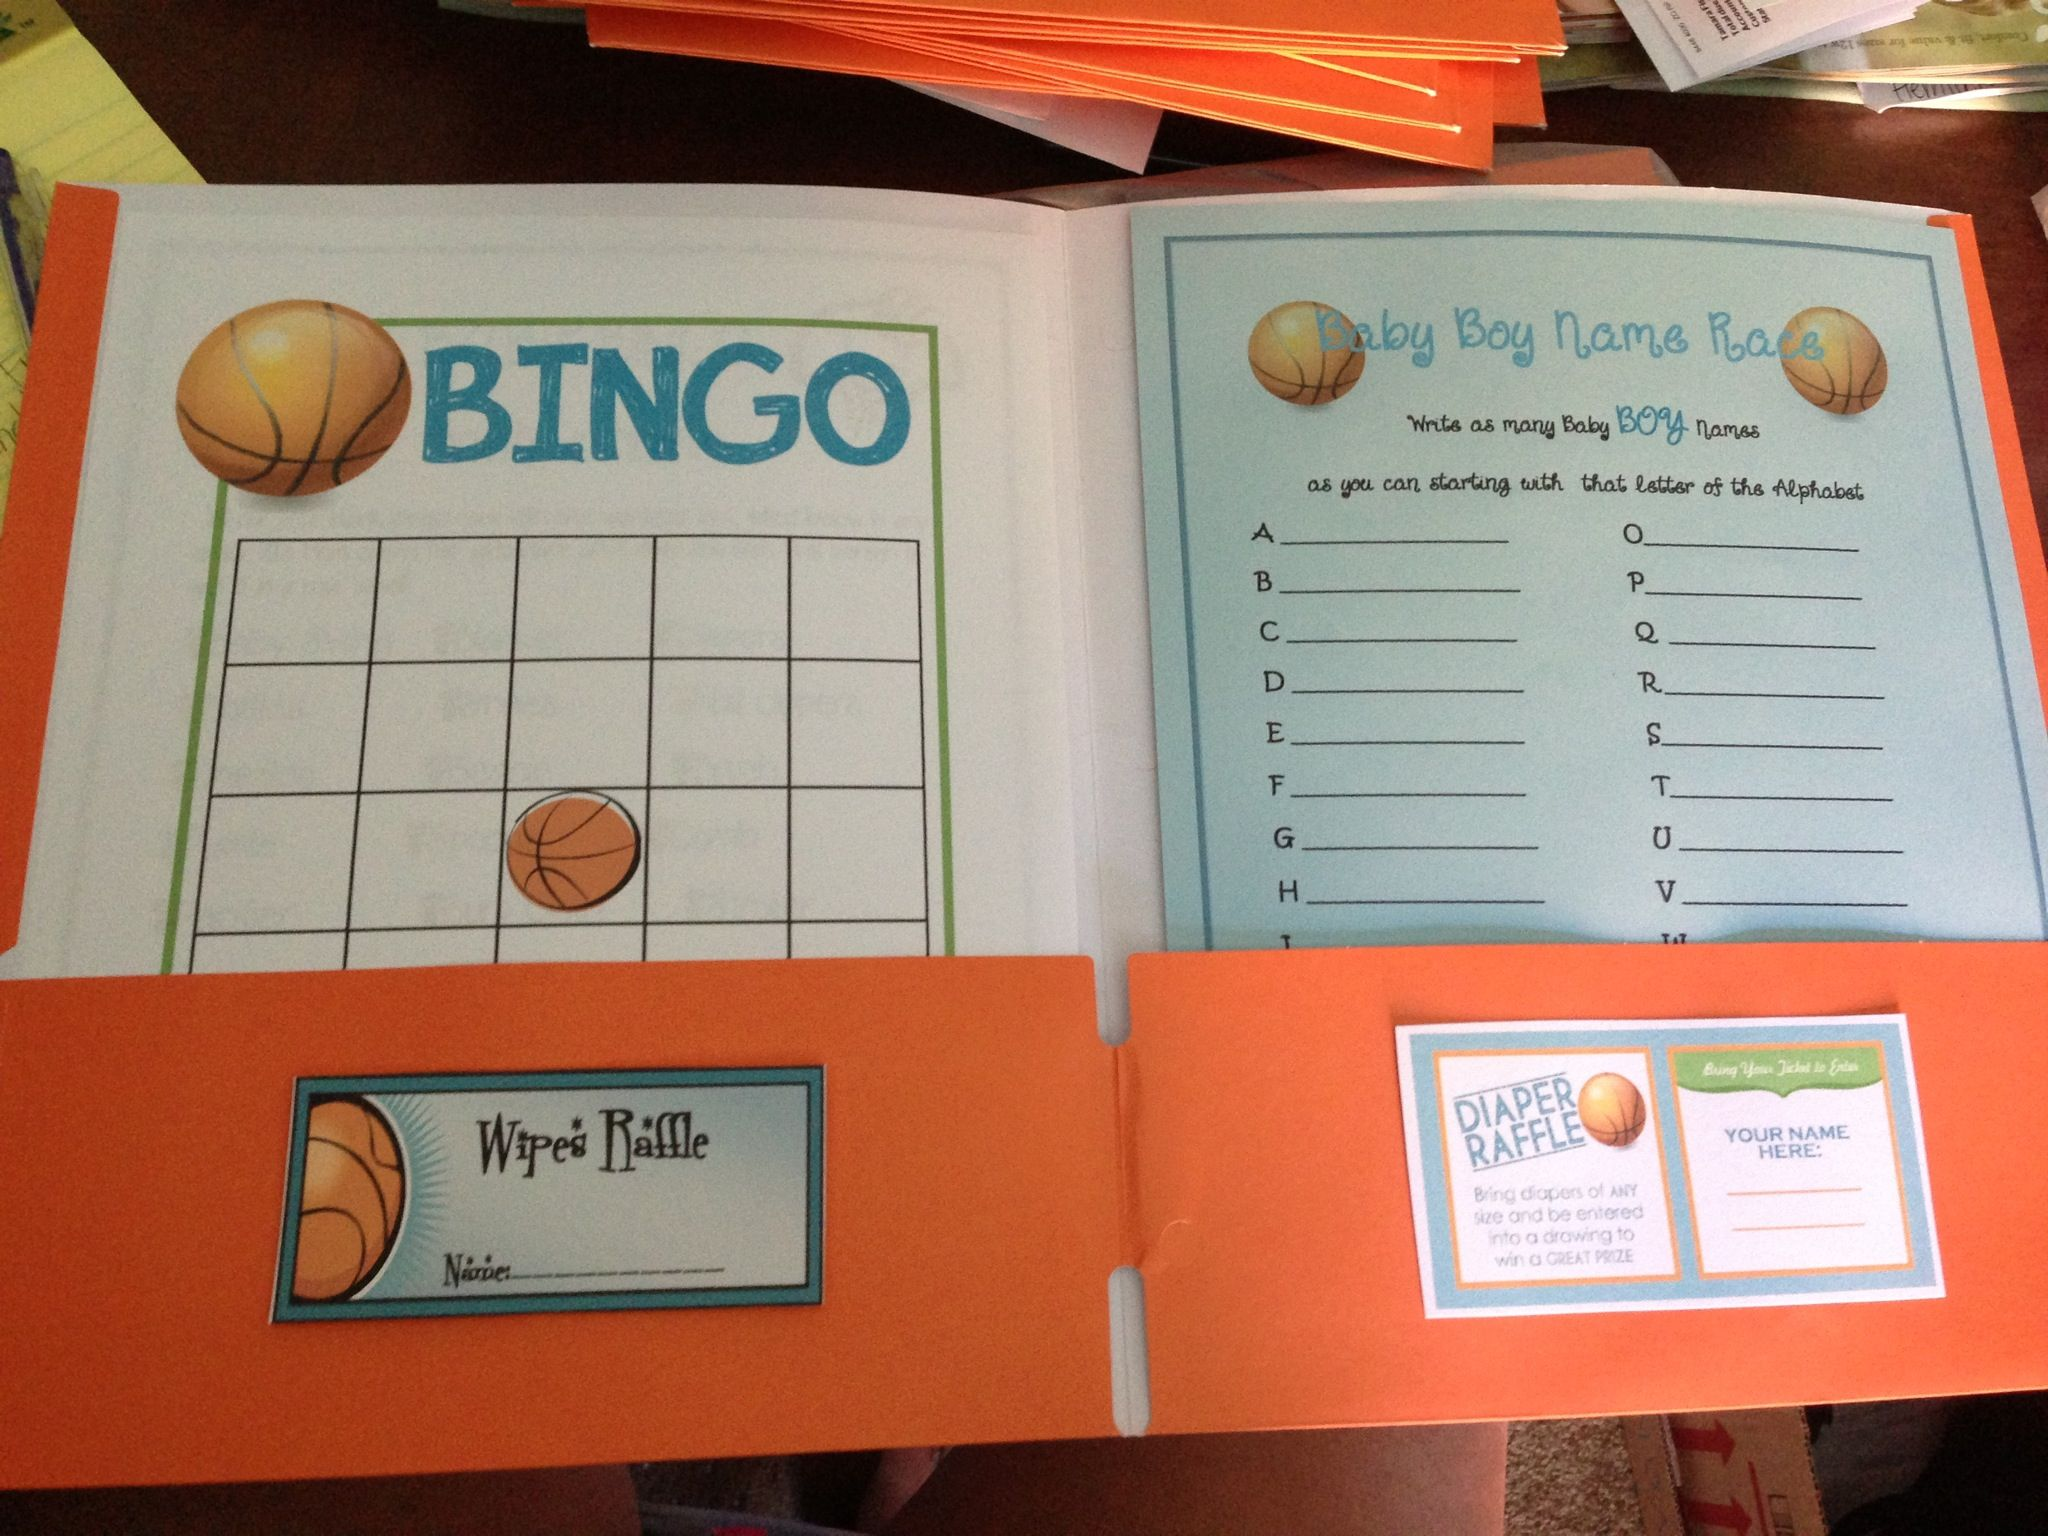 basketball baby shower game folder raffle tickets inside basketball baby shower game folder raffle tickets inside